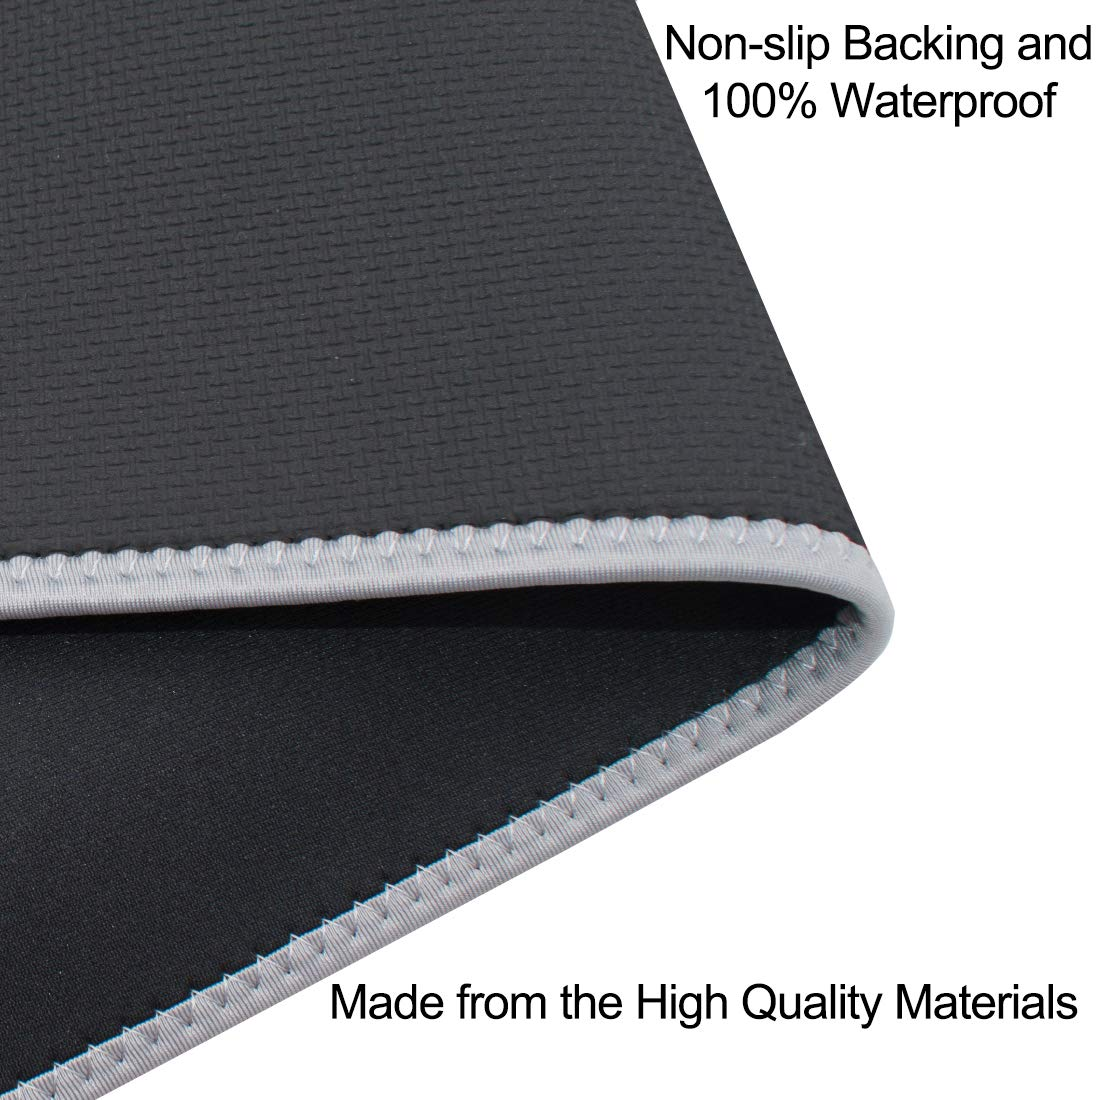 SEIUCAN Car Seat Cover, Non-Slip Breathable Waterproof Neoprene Pet Car Seat Protector Universal Fit Most Vehicles Seats